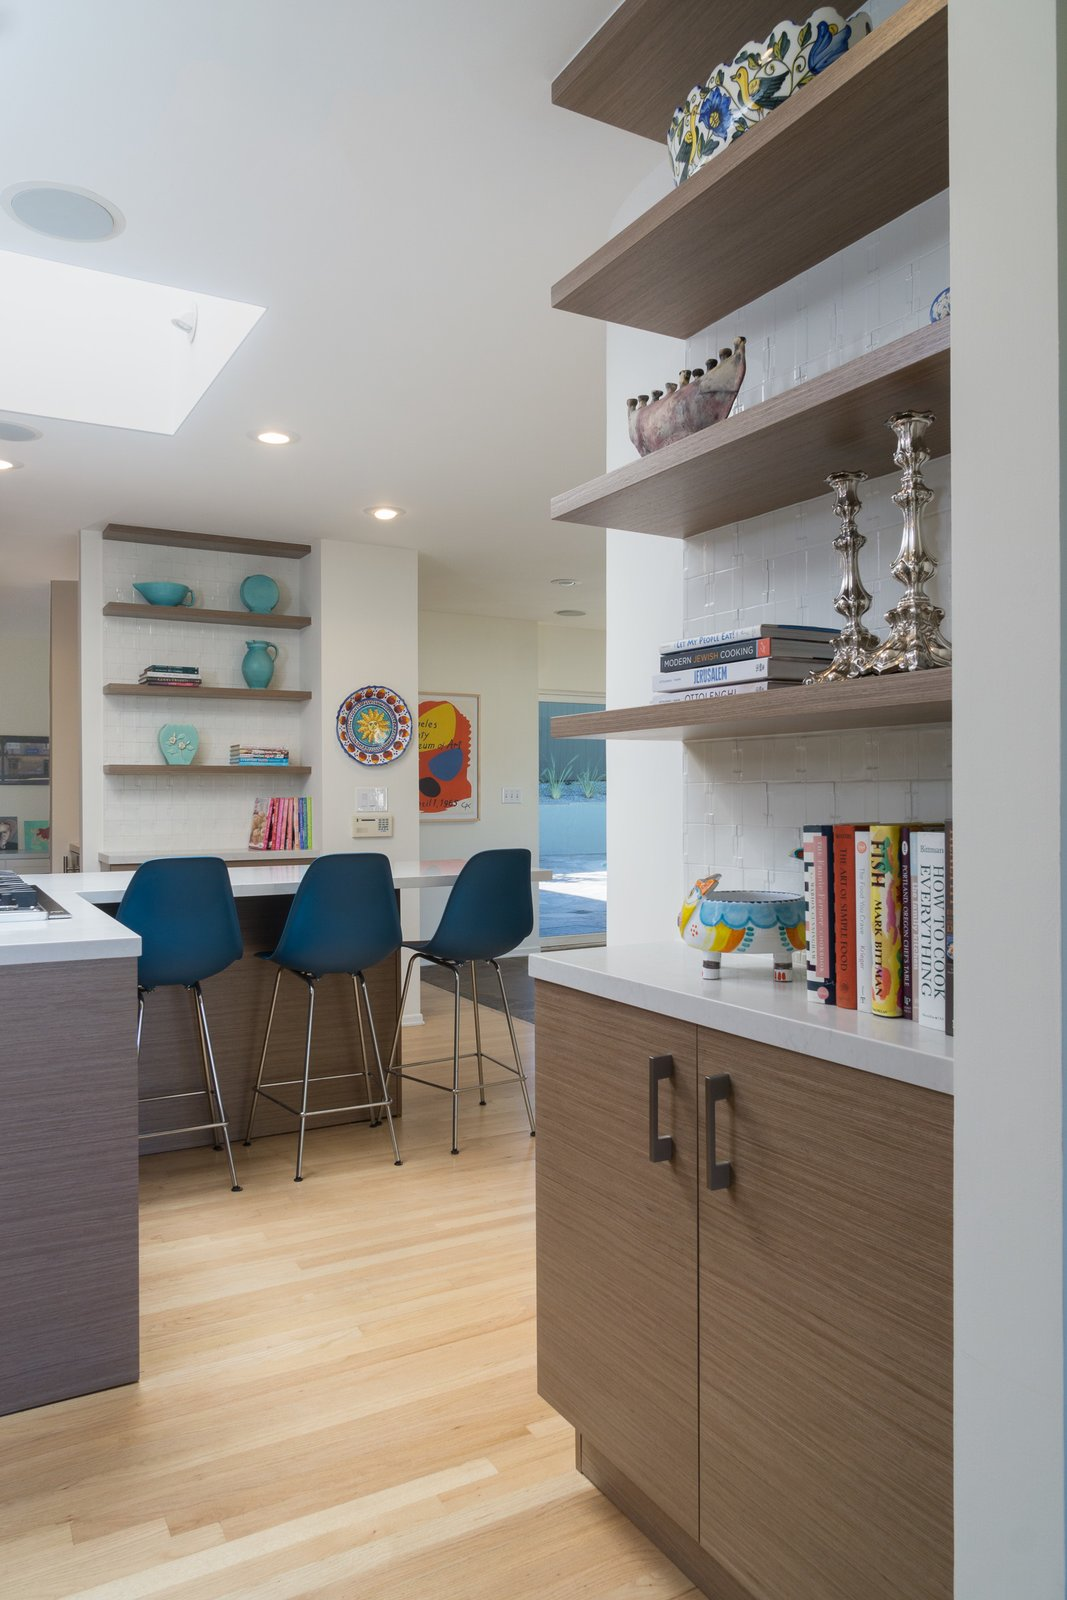 Modern Kitchen - Beverly Hills Remodel by Mario Peixoto Photography